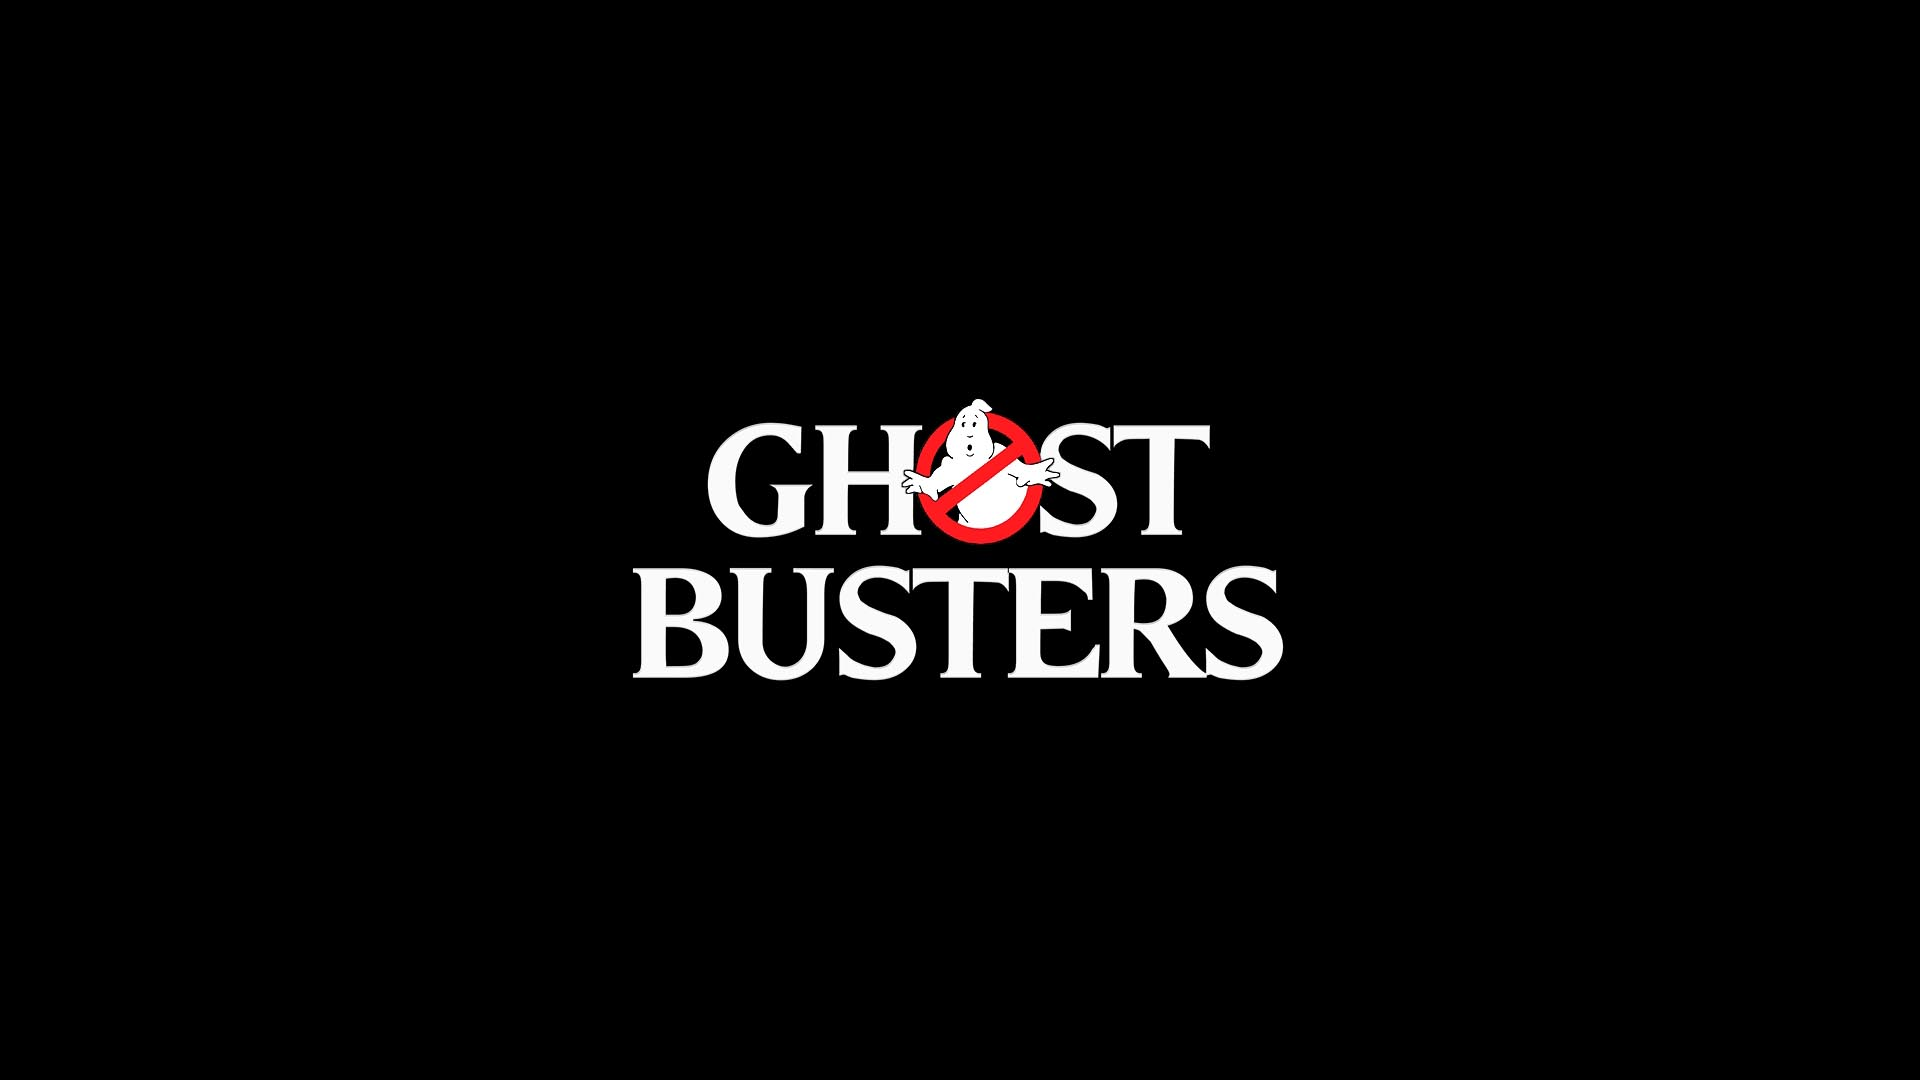 ghostbusters wallpaper HD